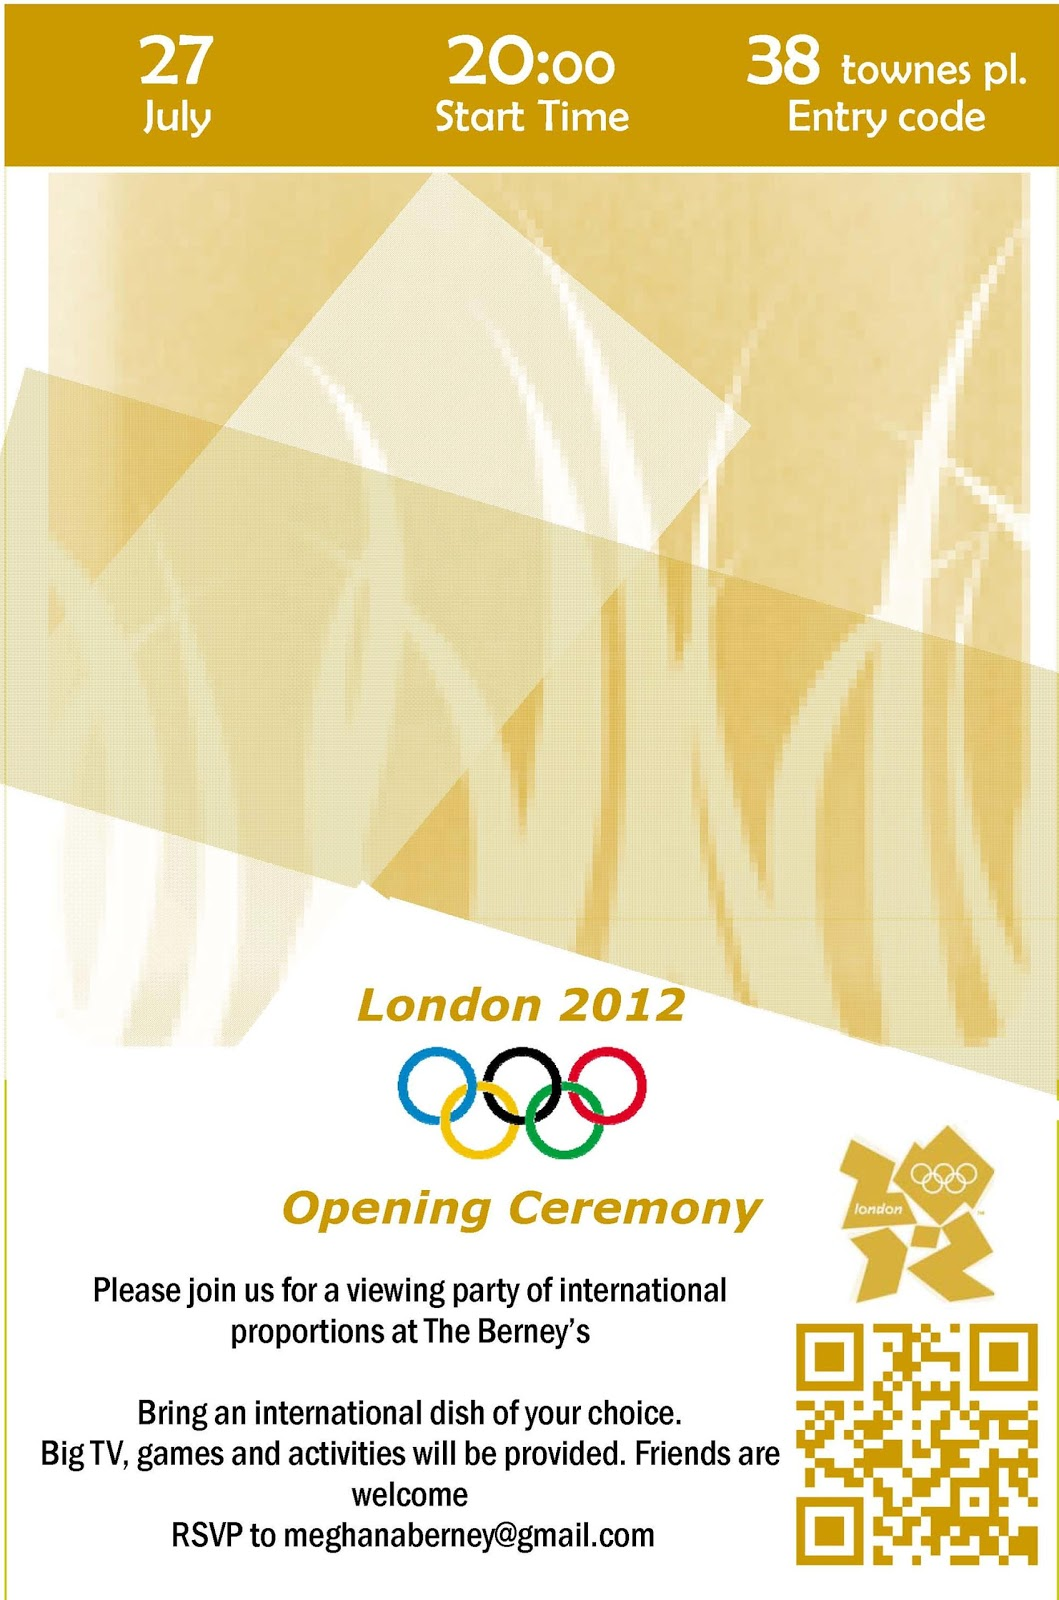 Another Crafty Day Opening Ceremony Viewing Party Invitations